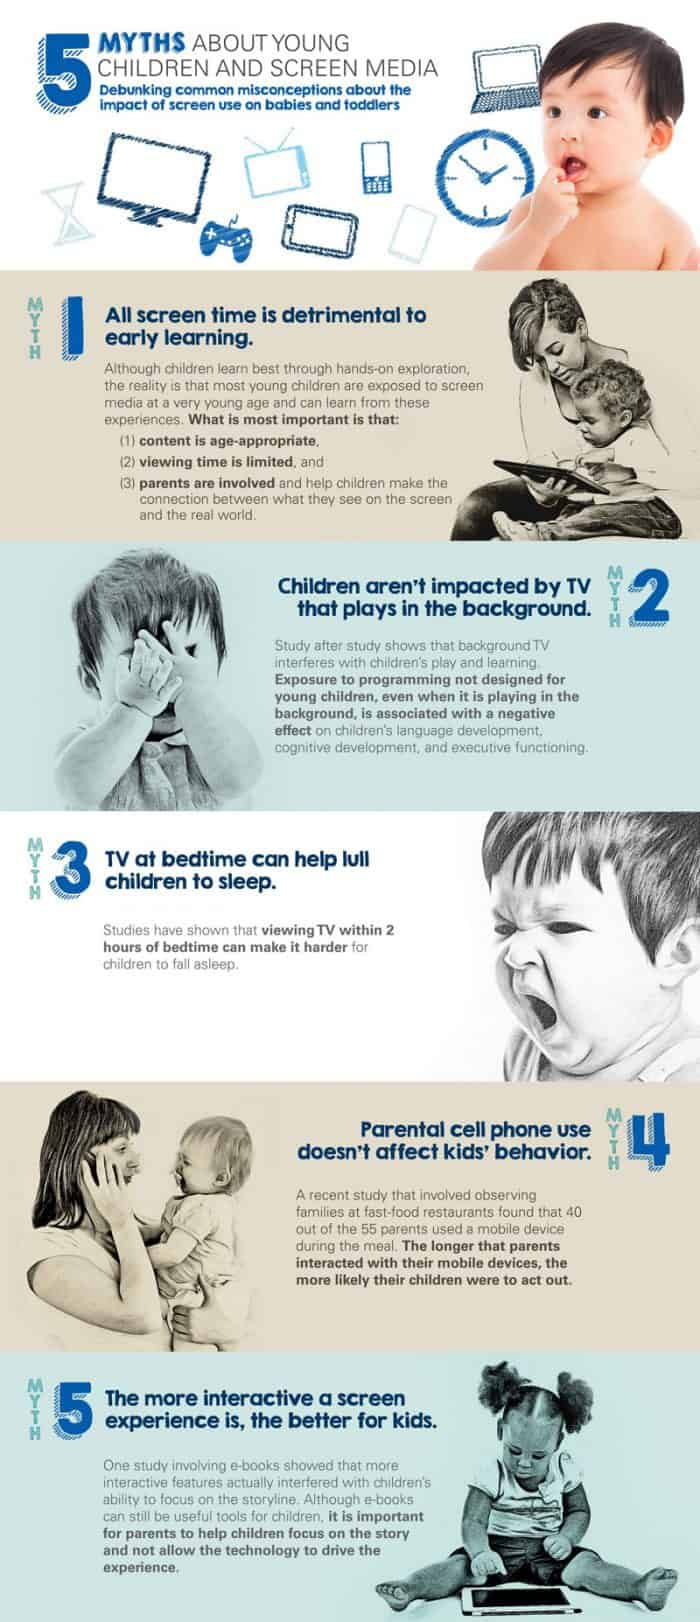 See the myths surrounding kids and screen time